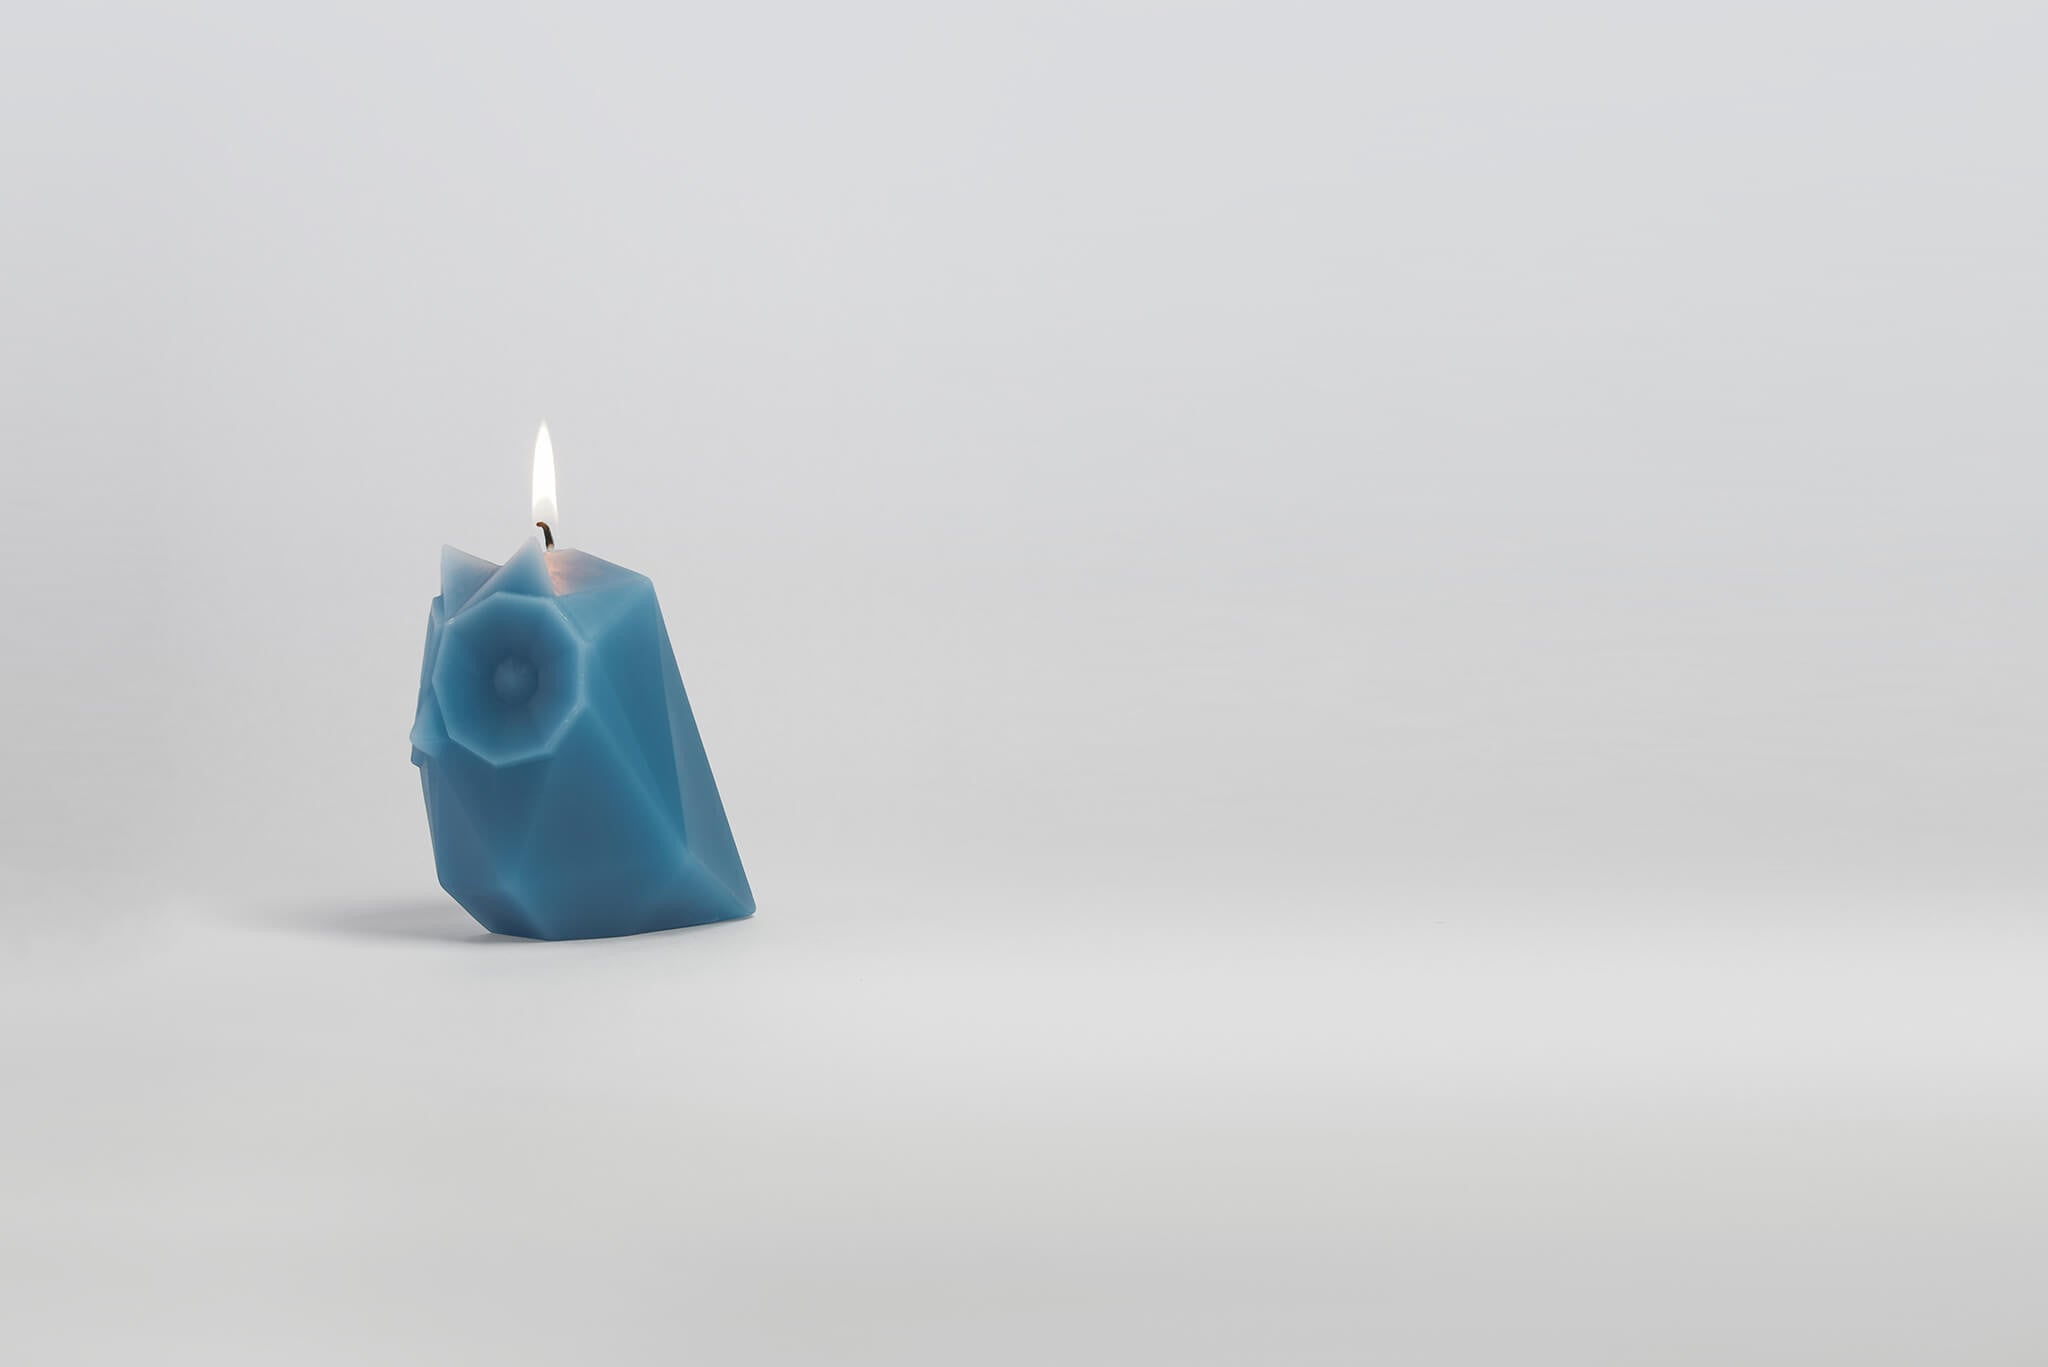 Side view of lit blue owl shaped candle.